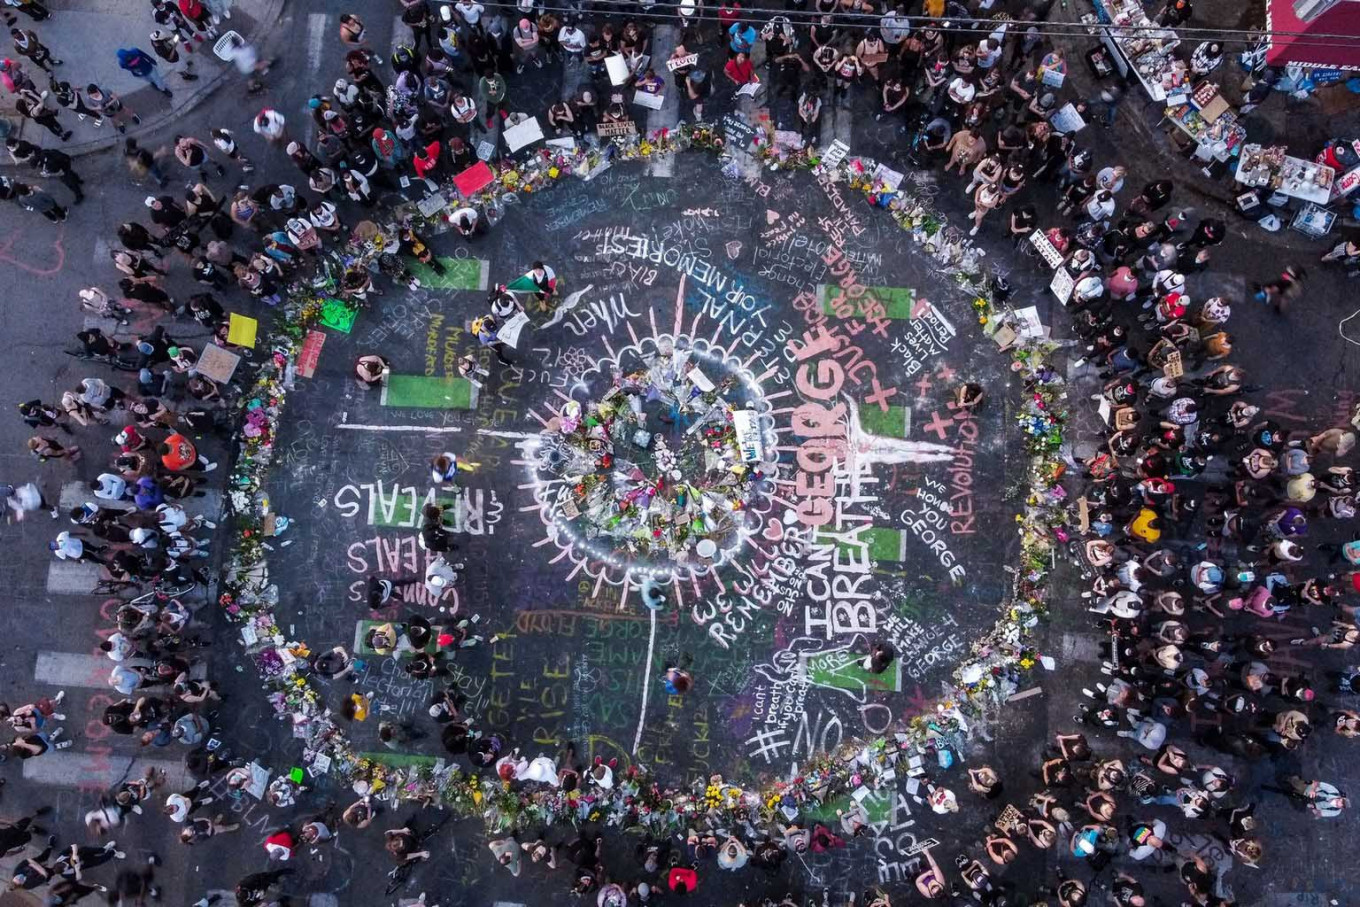 Ariel view of protestors gathered near the makeshift memorial in honour of George Floyd marking one week anniversary of his death, on June 1, 2020 in Minneapolis, Minnesota. - Major US cities -- convulsed by protests,  clashes with police and looting since the death in  Minneapolis police custody of George Floyd a week ago -- braced Monday for another night of unrest. More than 40 cities have imposed curfews after consecutive nights of tension that included looting and the trashing of parked cars. AFP/Chandan Khanna